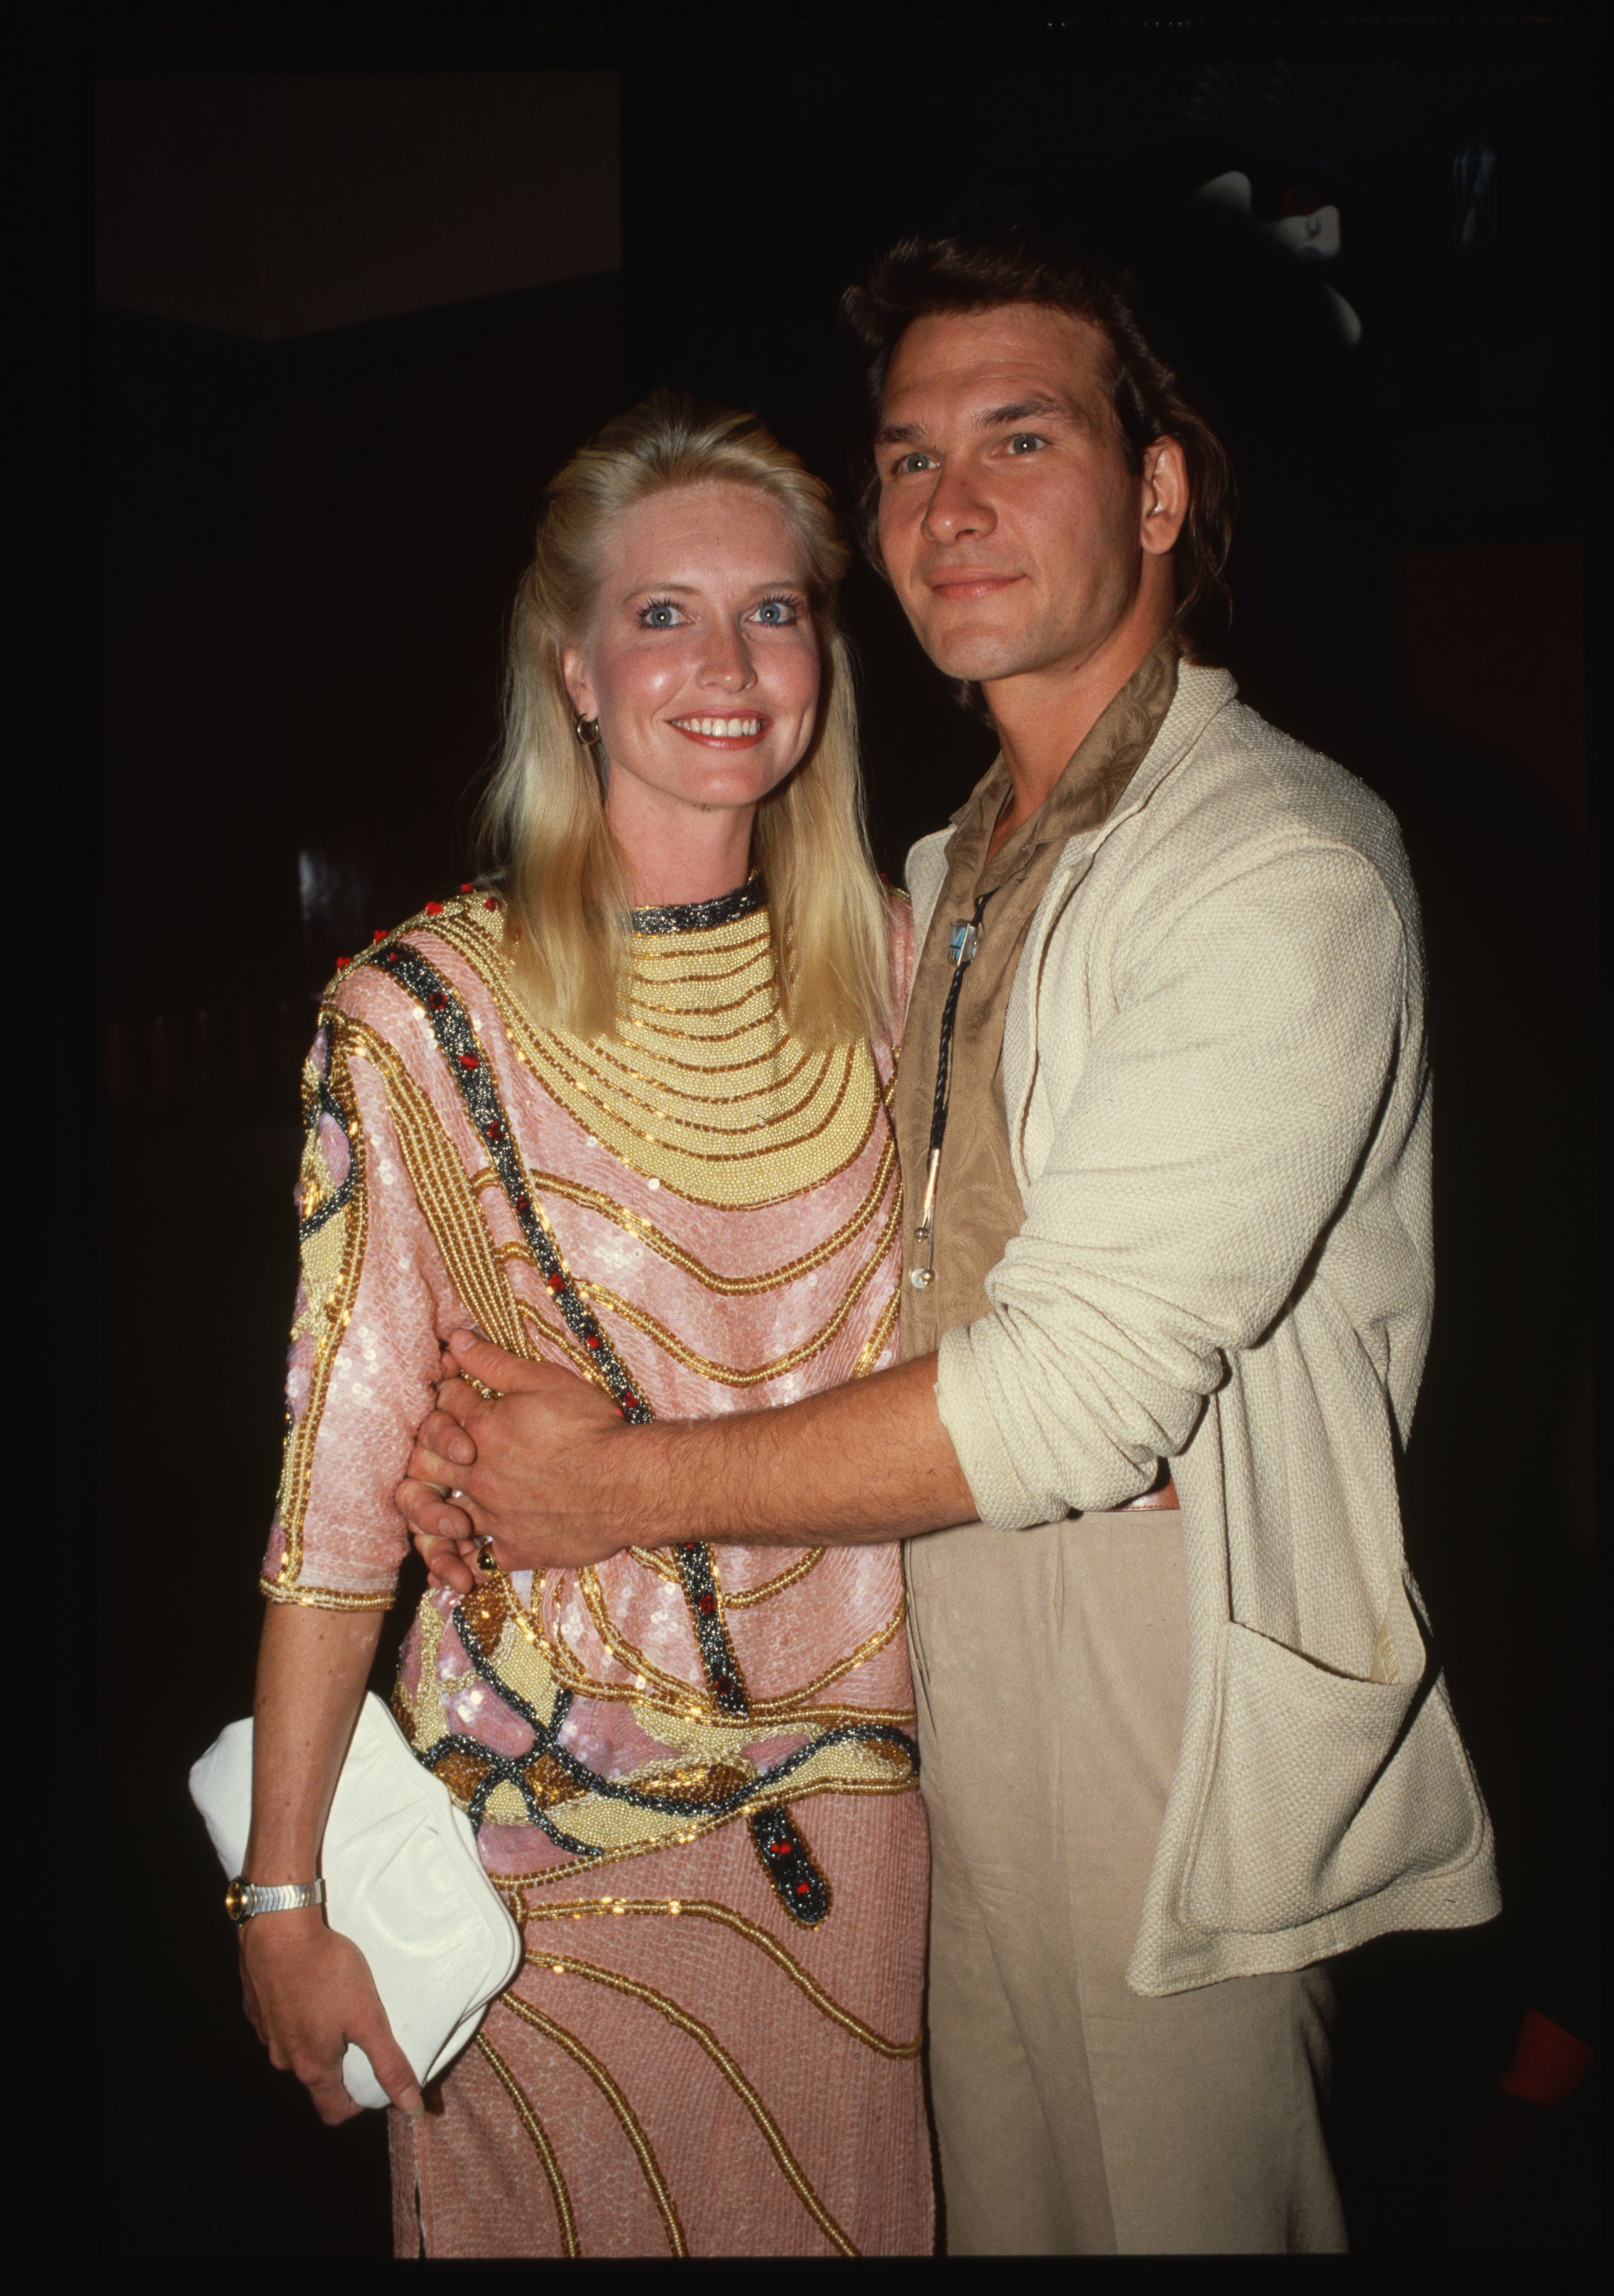 Patrick Swayze embraces his wife Lisa Niemi, 1987 | Photo: GettyImages